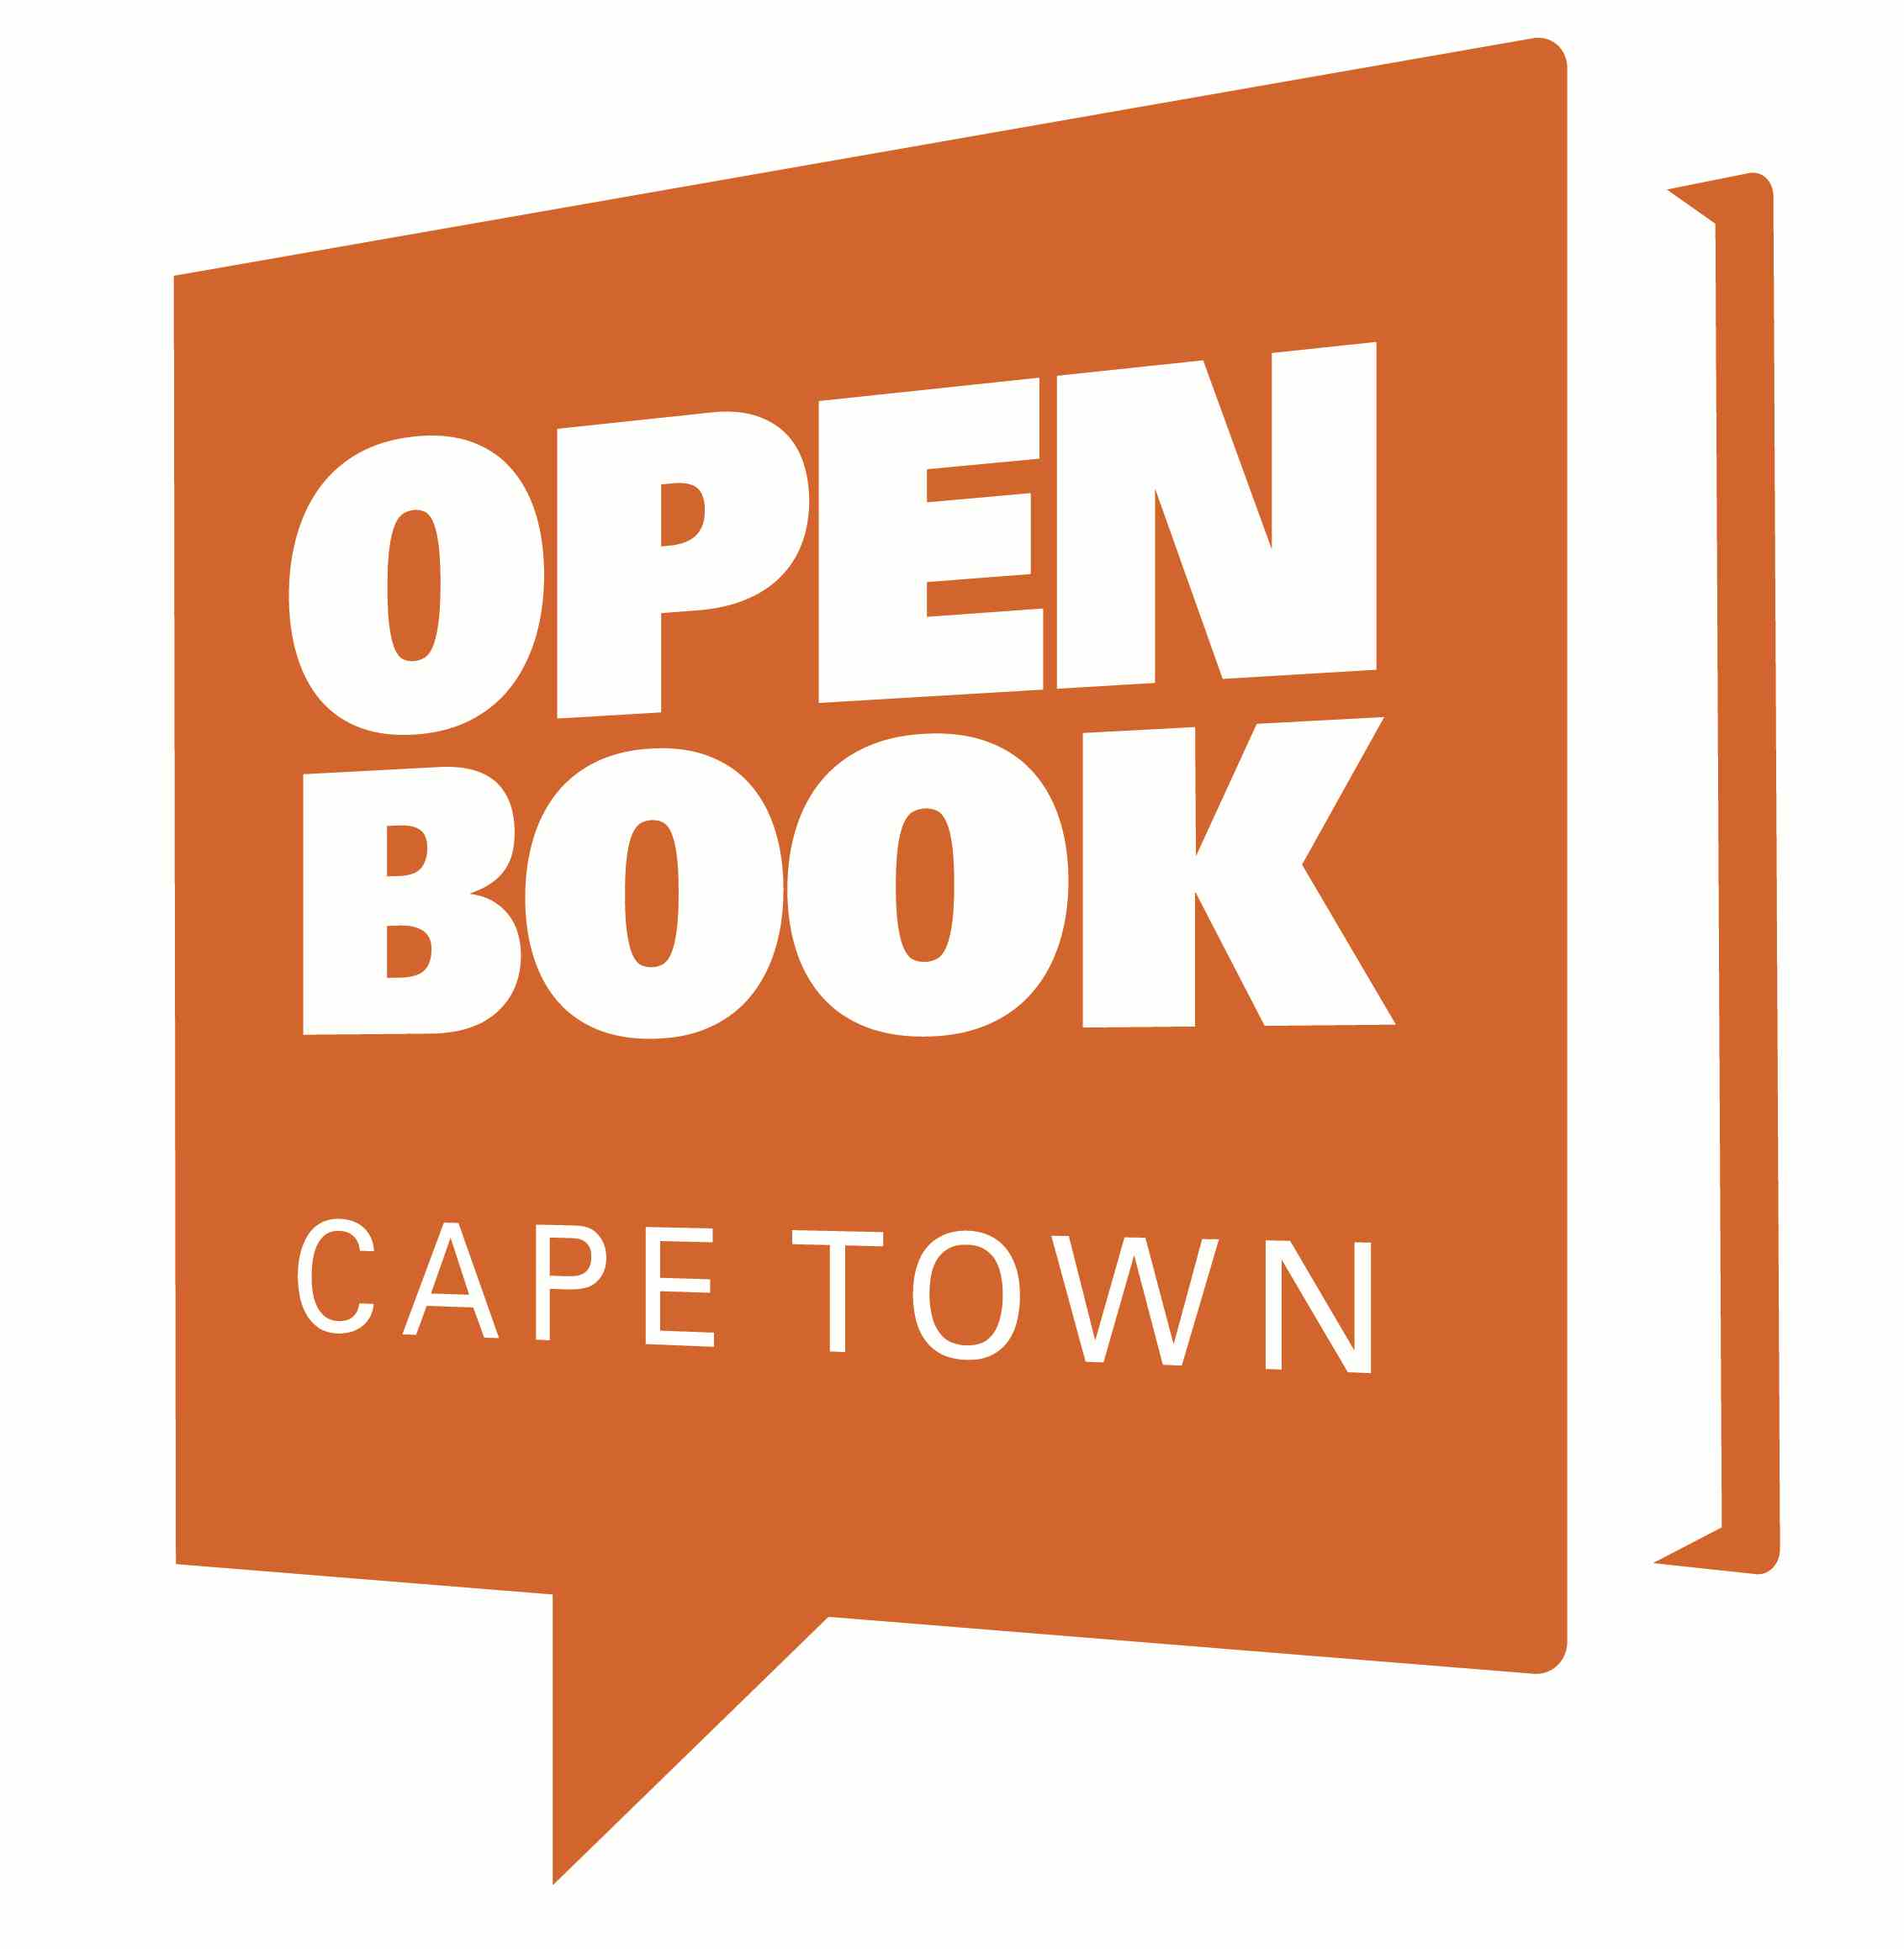 David Philip and New Africa Books will be at the Open Book Festival 2017